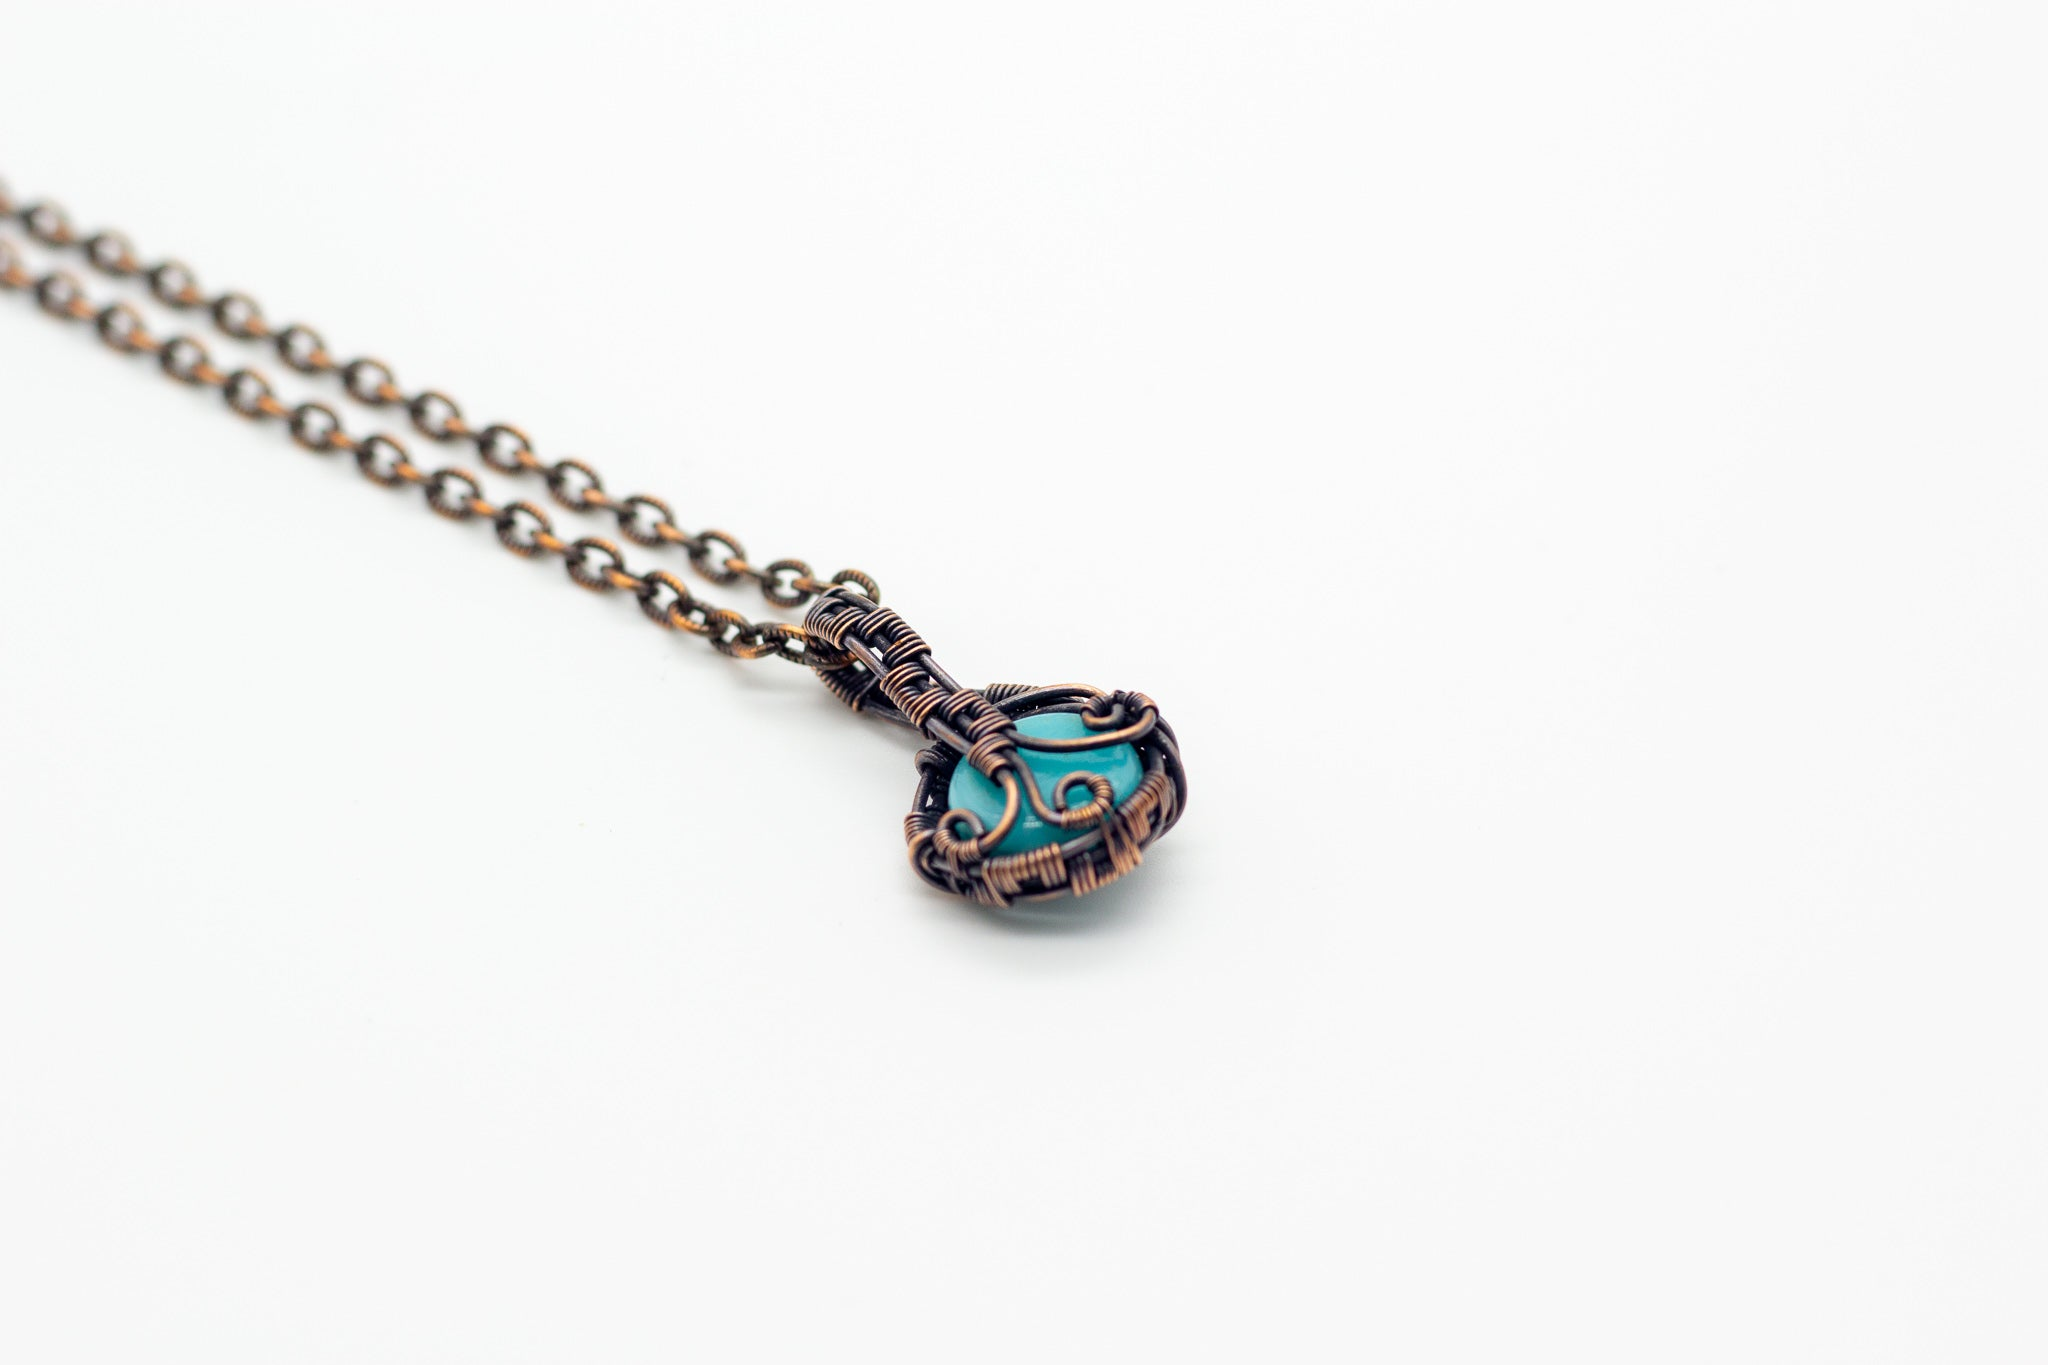 streaked-blue-fused-glass-mini-pendant-copper-wire-wrapping-nymph-in-the-woods-jewelry